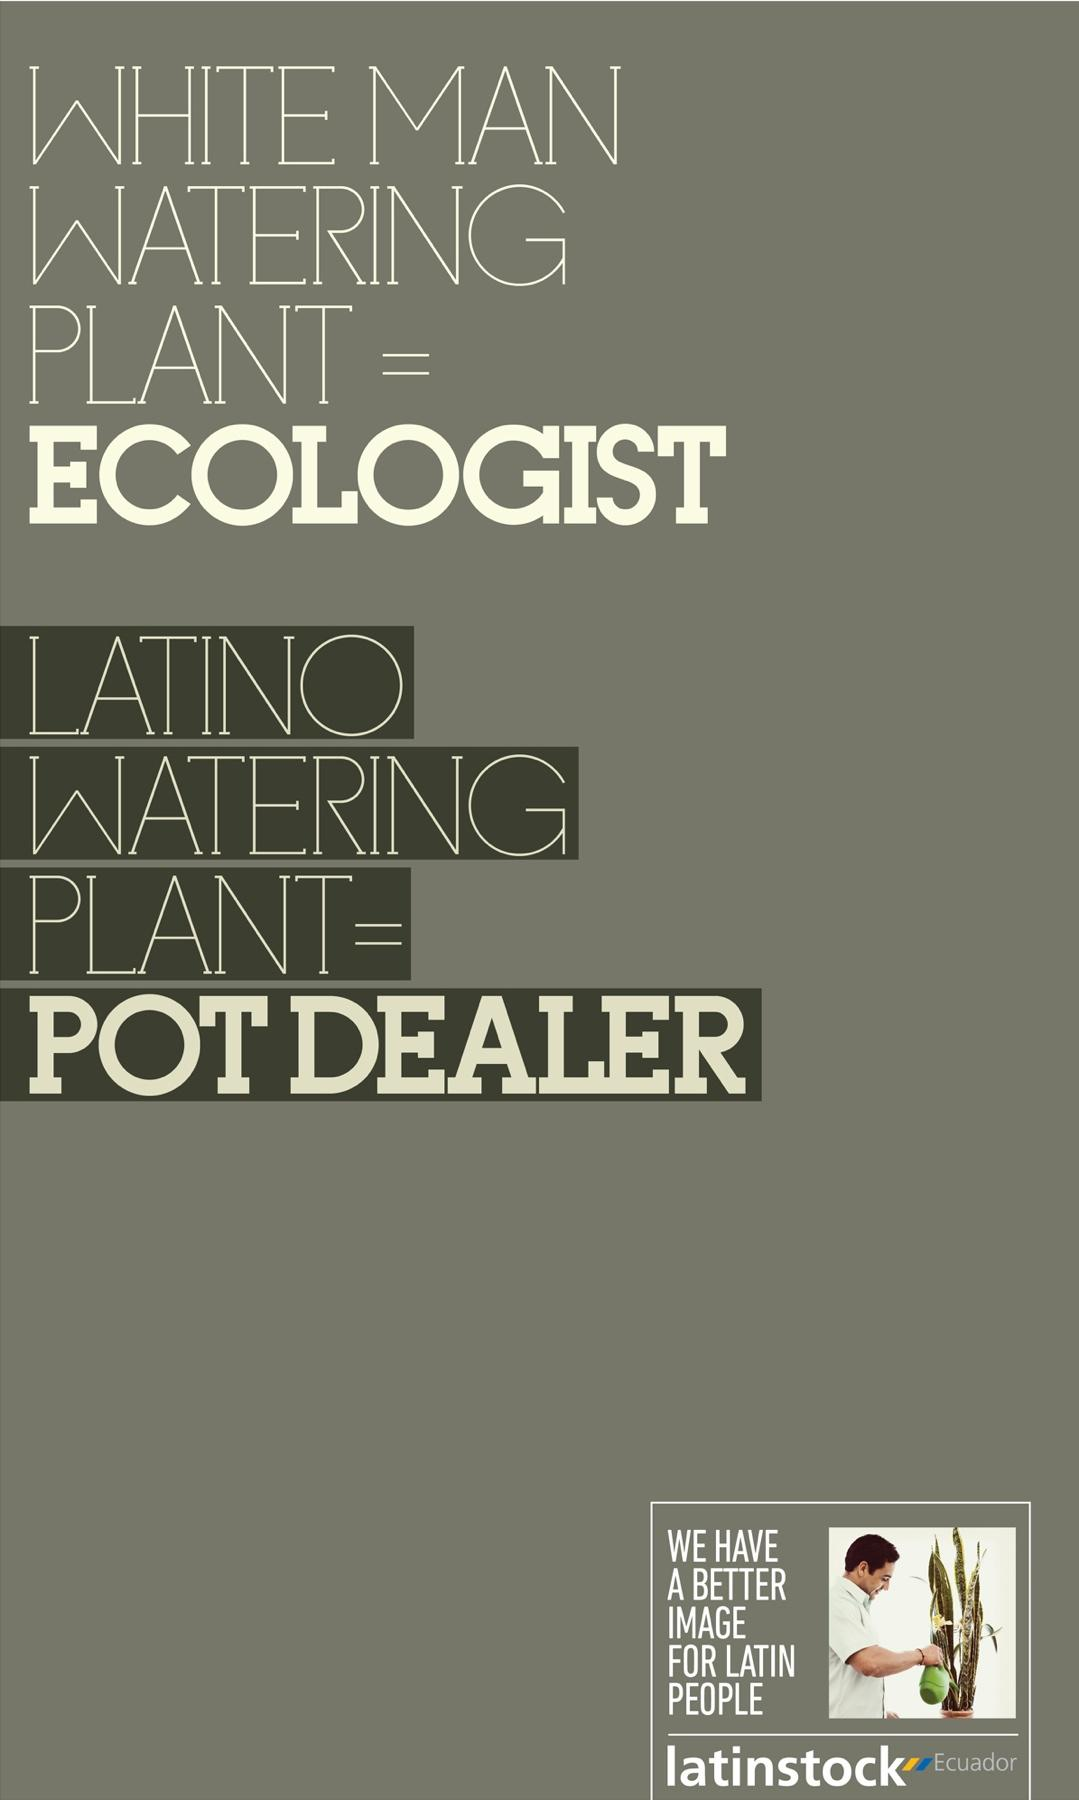 Latinstock:  Latin people, 2